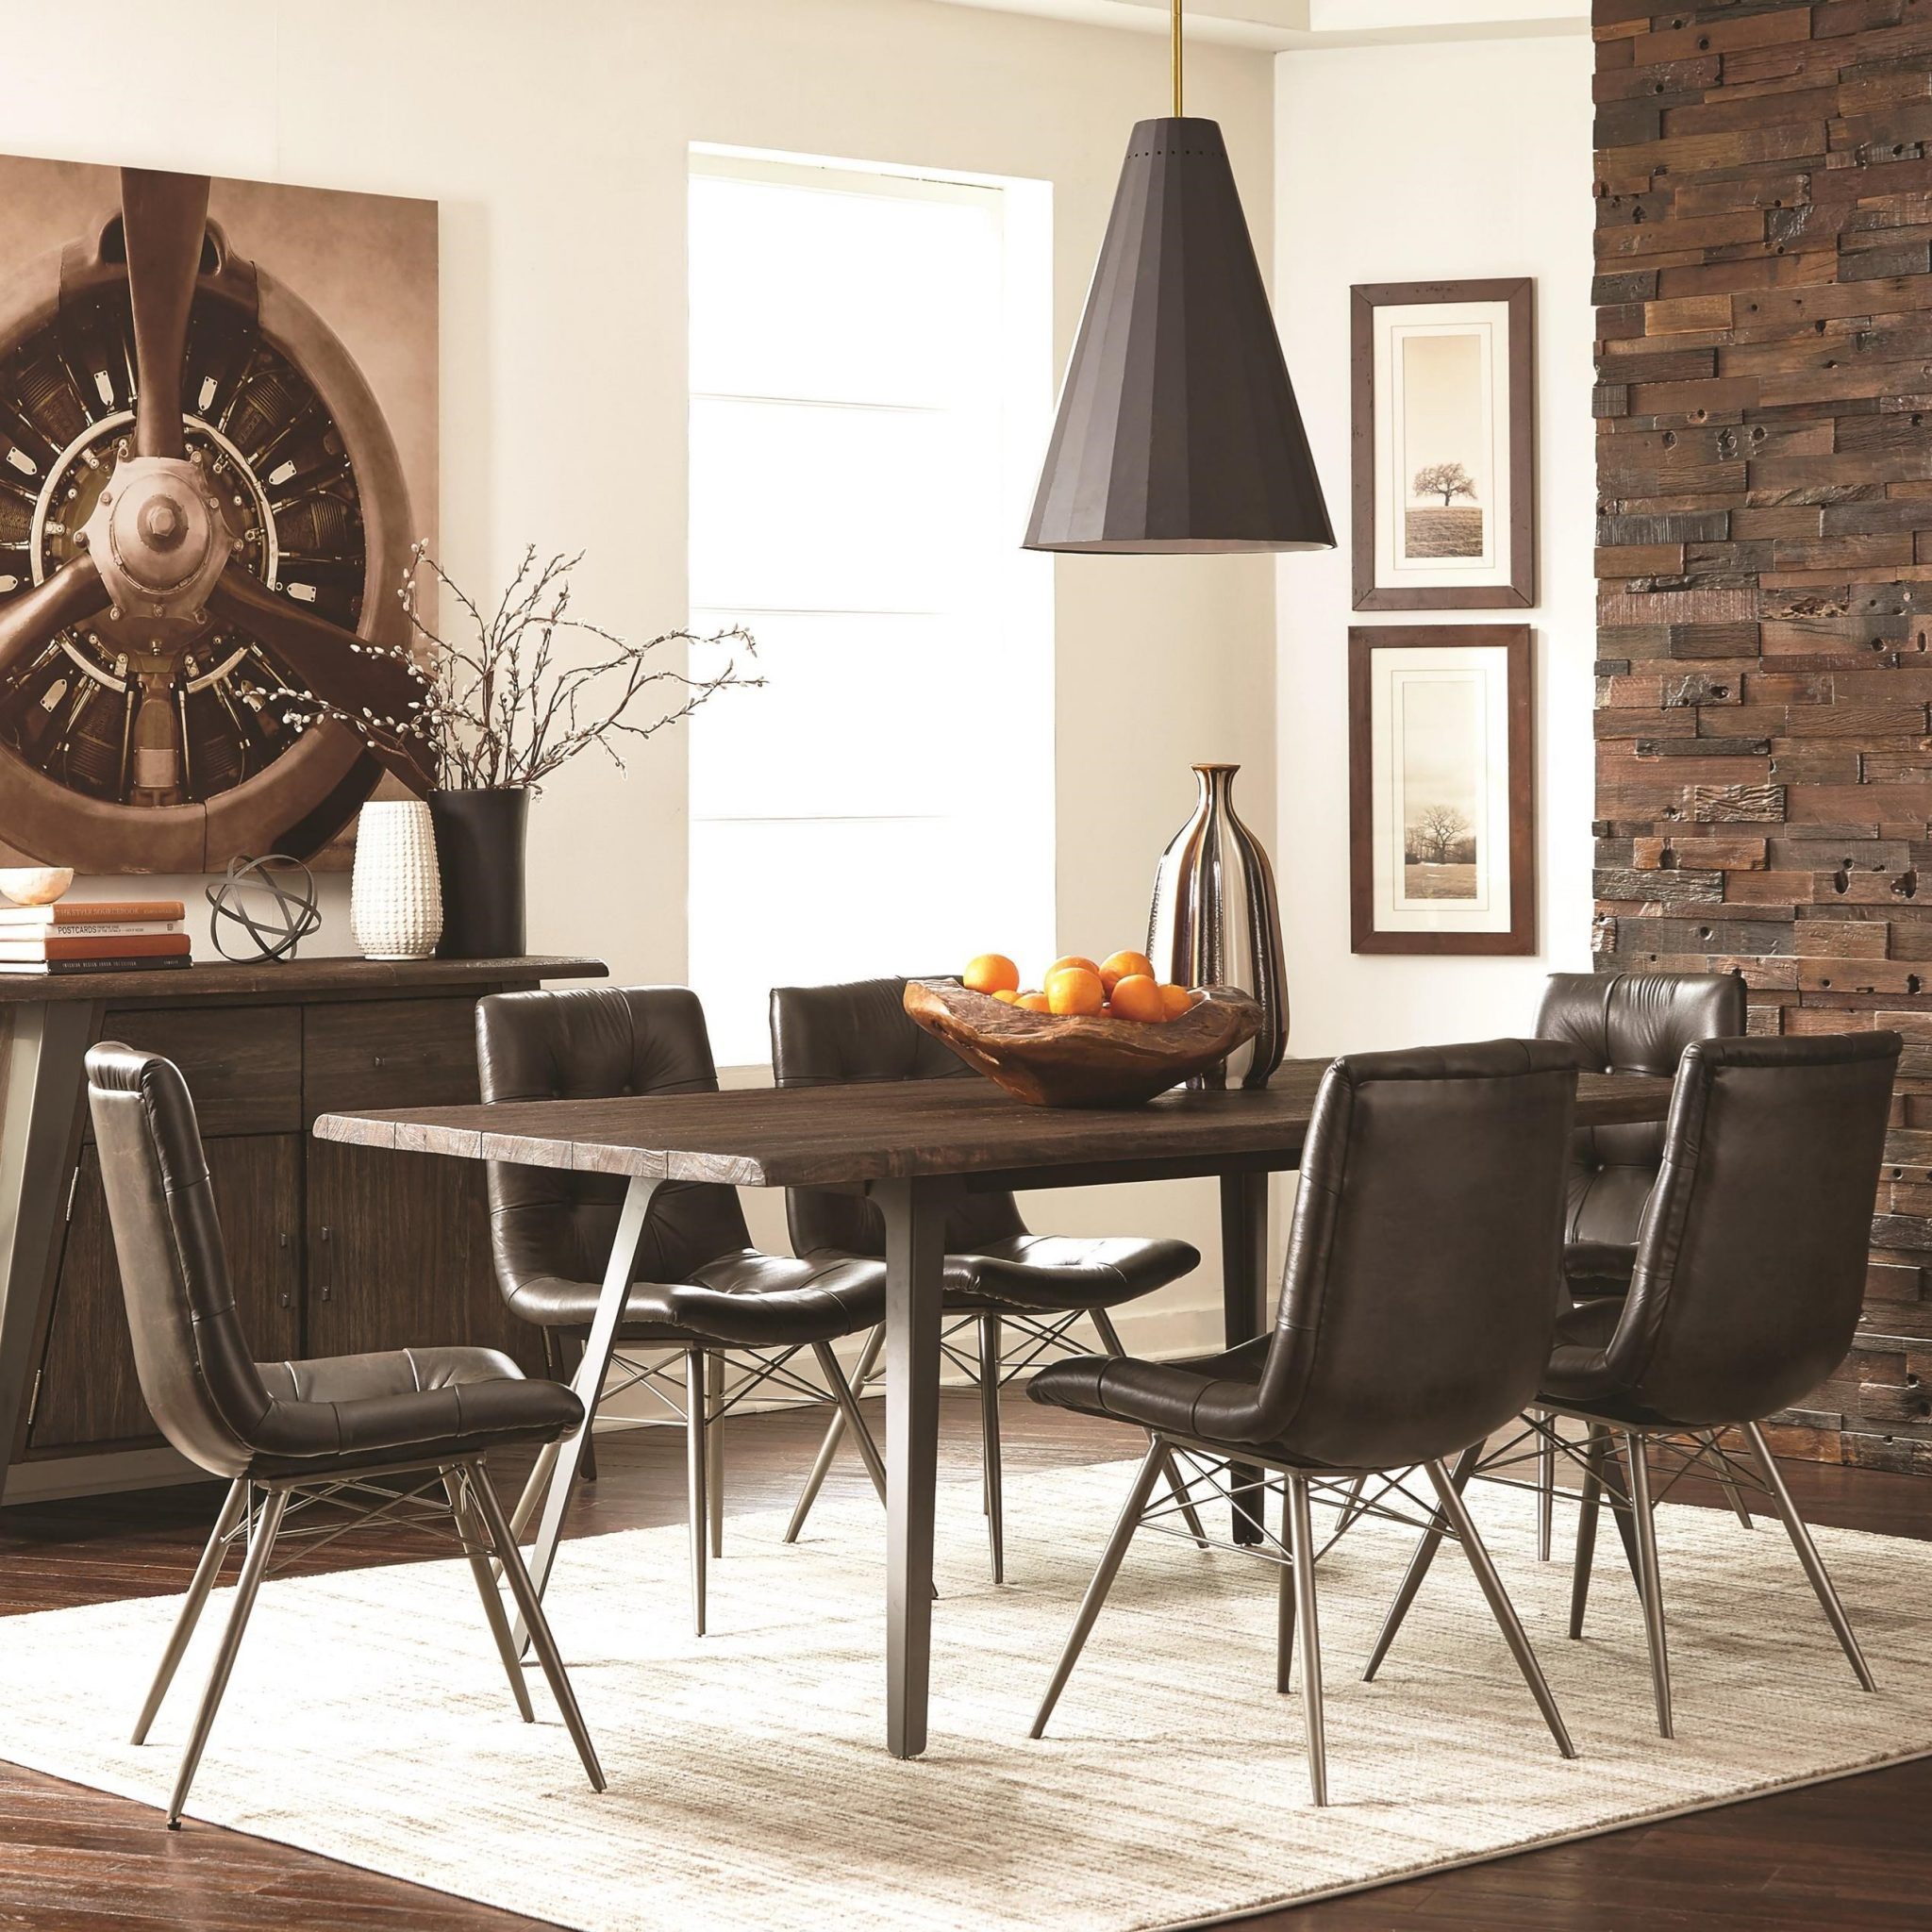 Fremont Industrial Dining Set 5 Pc By Coaster Furniture Expo Outlet